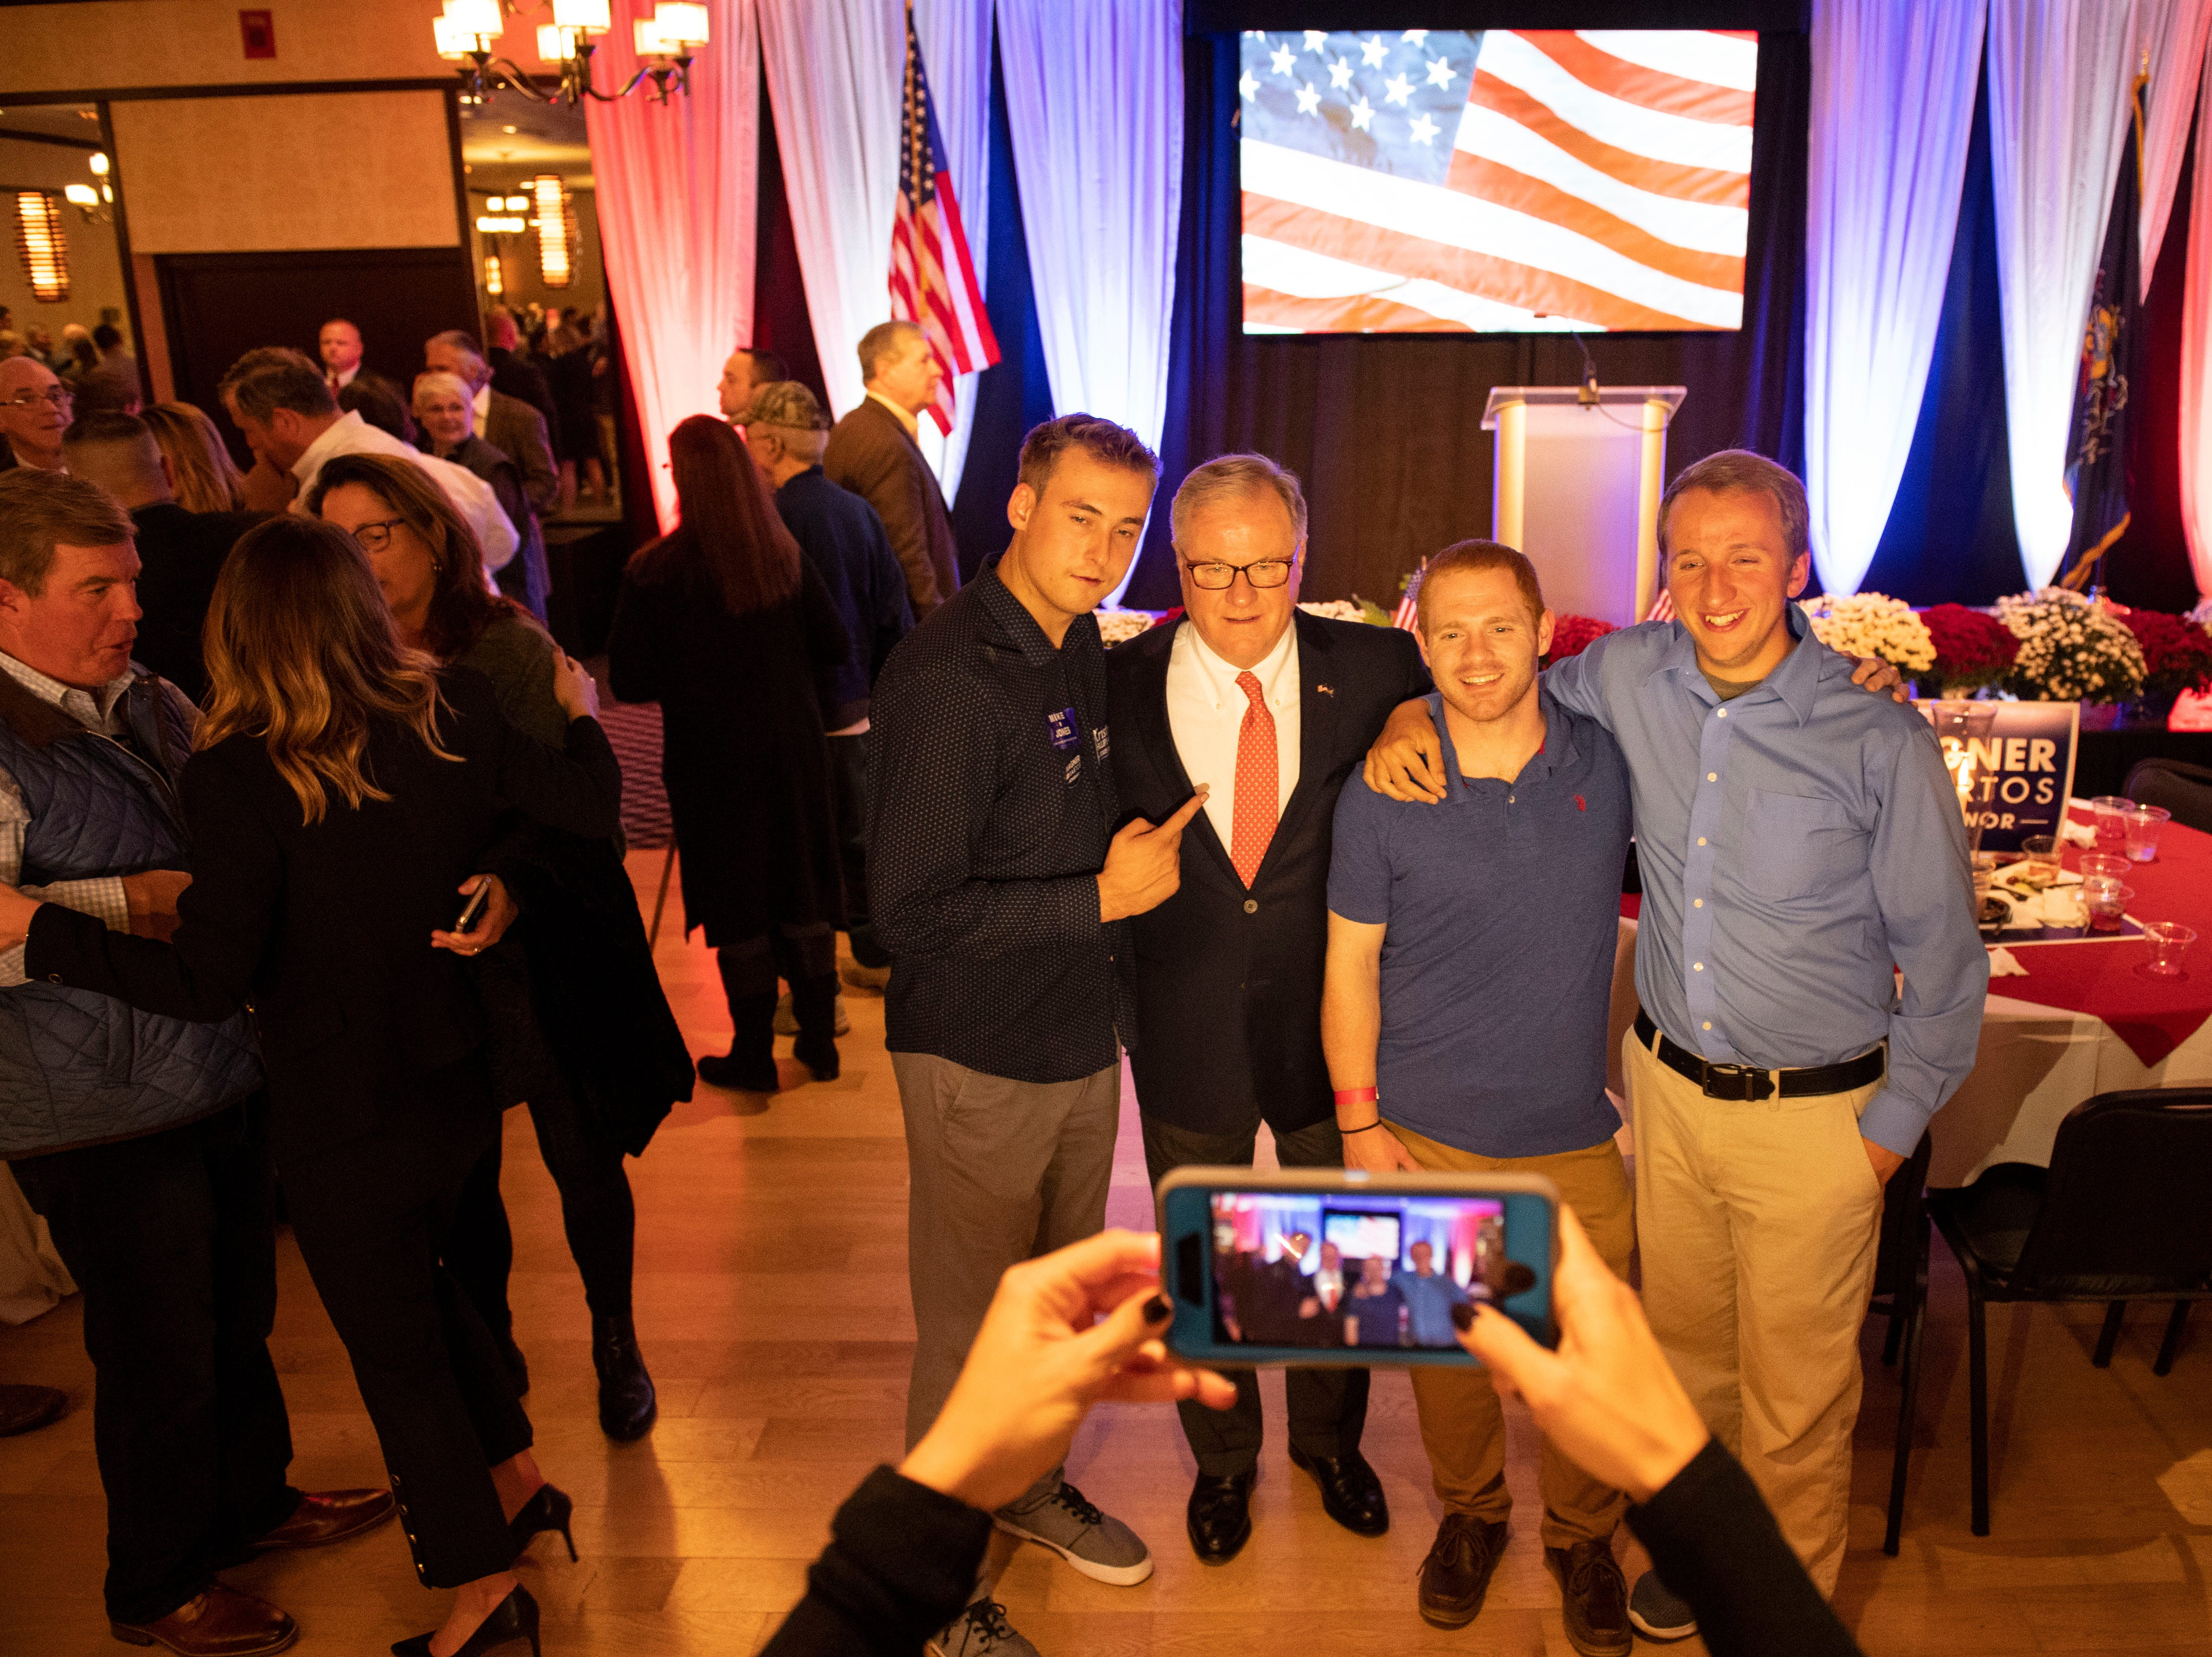 Scott Wagner, second from left, poses for a photo with a group of his supporters following his concession speech at the Wyndham Garden York hotel on Tuesday, Nov. 6, 2018. Wagner lost to Democratic incumbent Tom Wolf. During his concession speech, Wagner said he's not going anywhere.